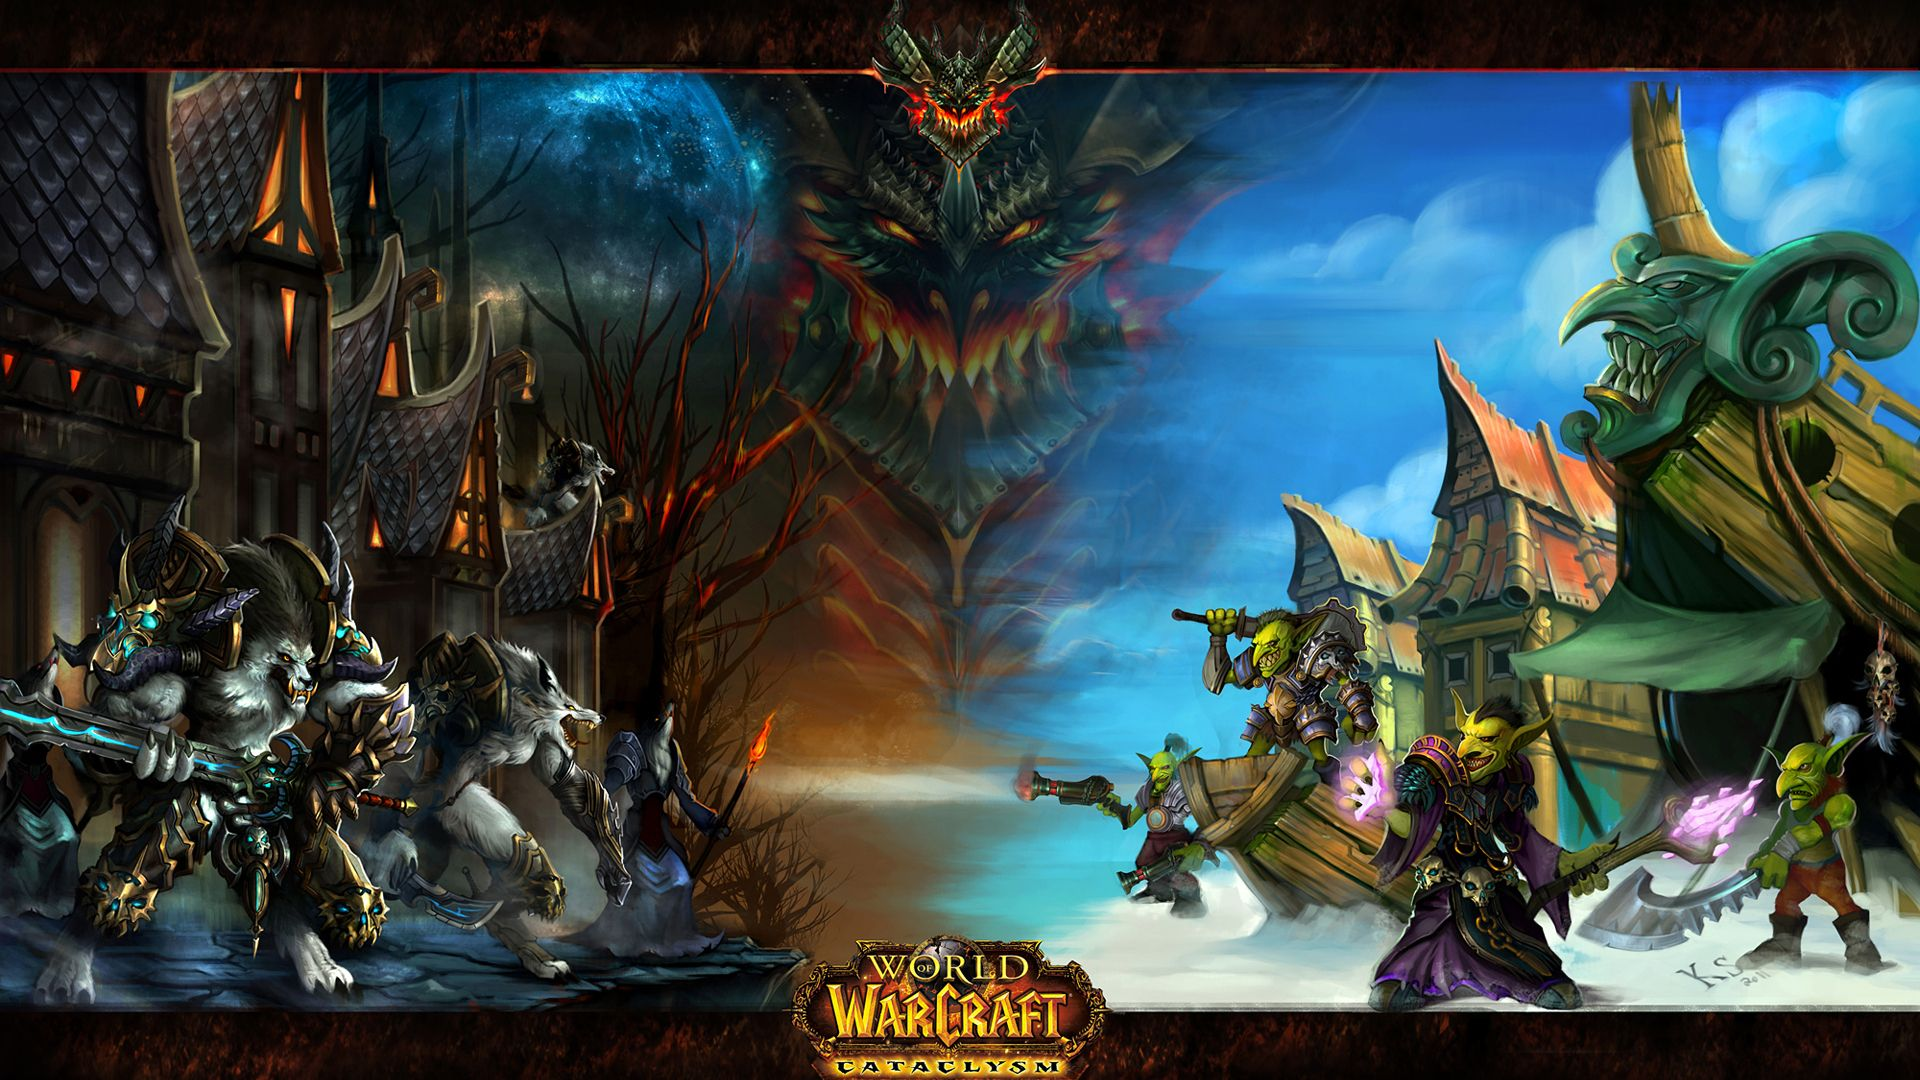 Video Game world of warcraft Wallpaper World of